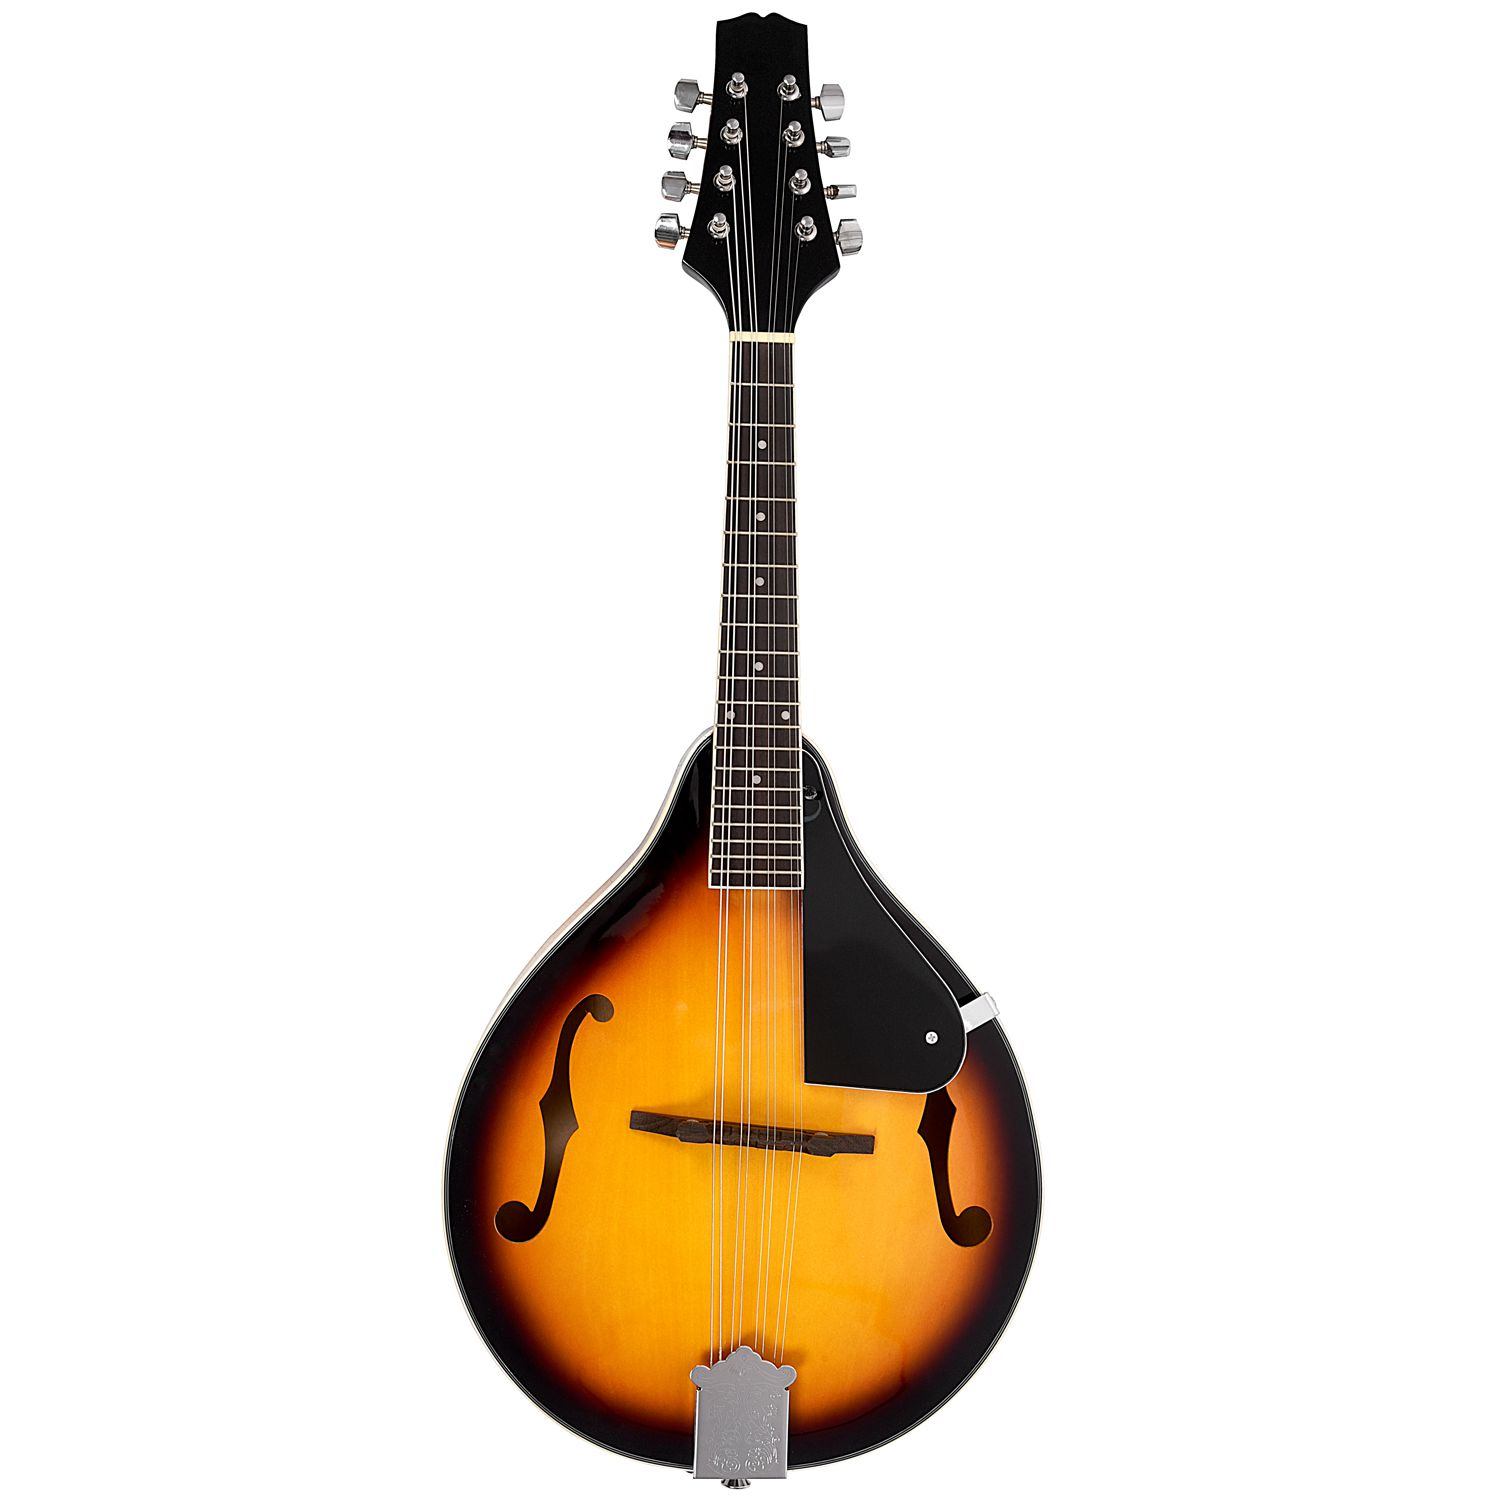 IRIN A-Style Mandolin Sunburst Linden Wood With Wiping Cloth Adjustable String Instrument 8 Strings Guitar For Beginners